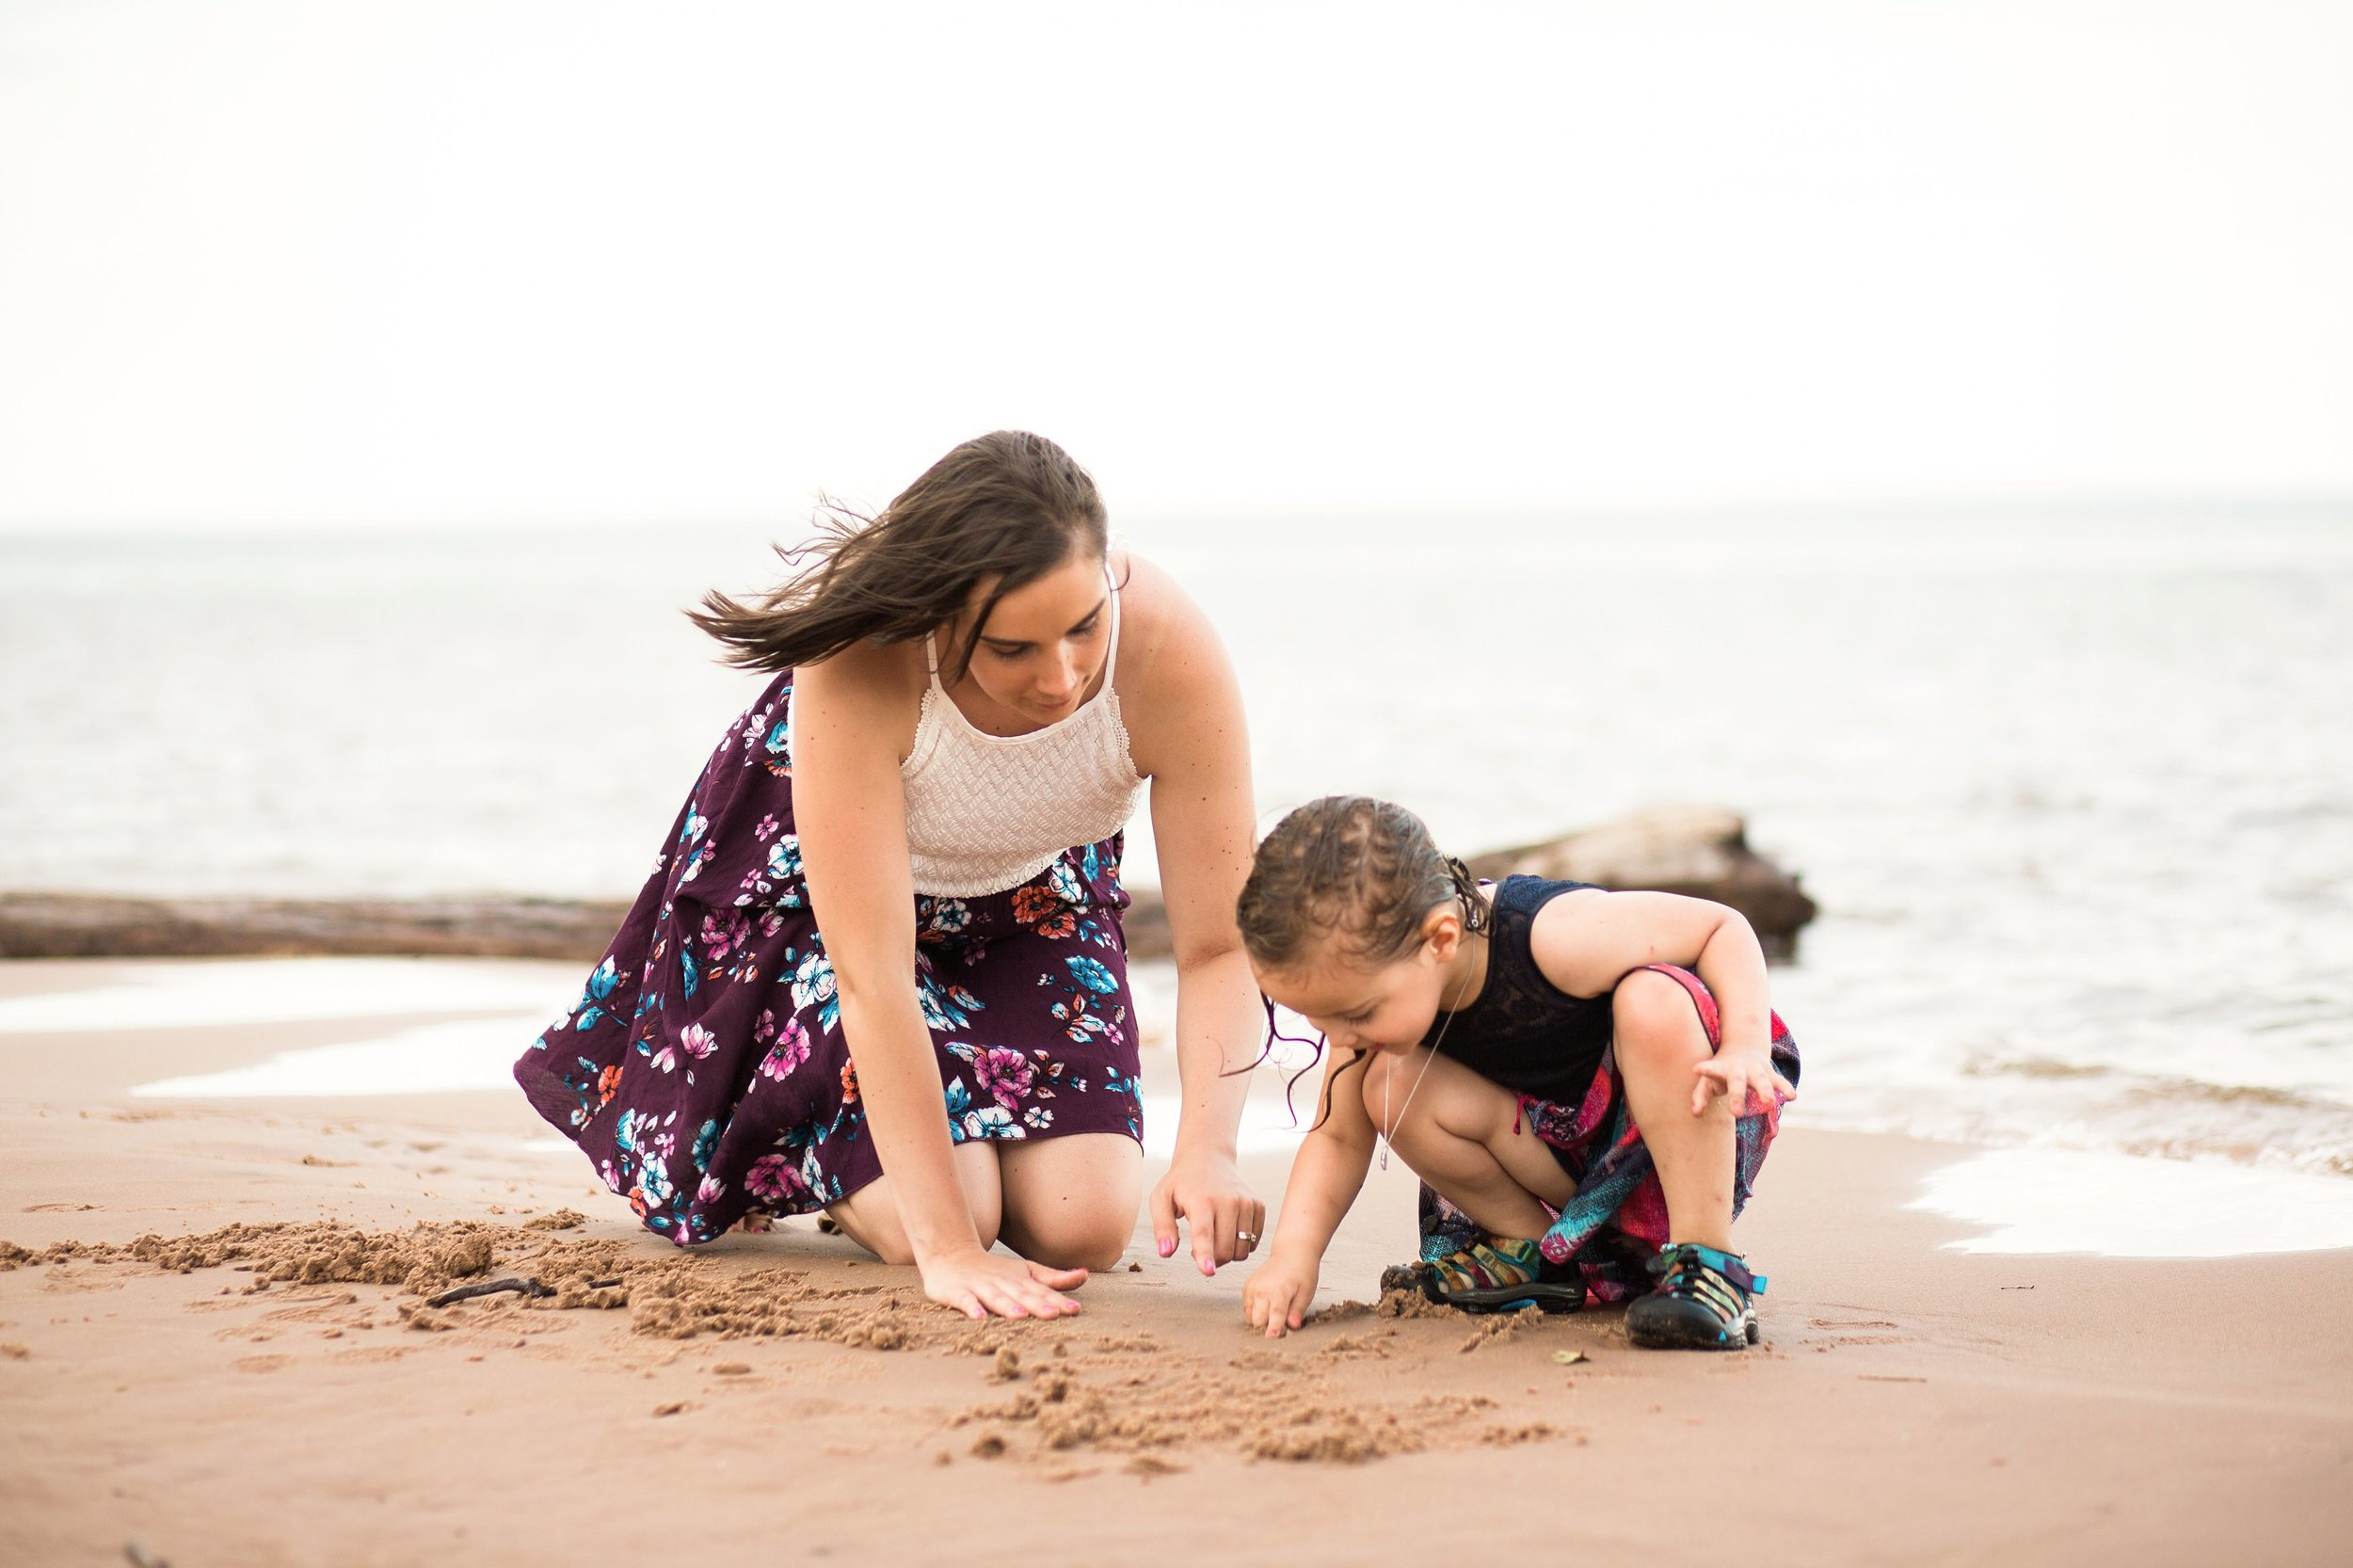 Mommy and Me Fun Beach Portraits Lifestyle Photography by Seattle WA Portrait Photographer Janelle Elaine.jpg